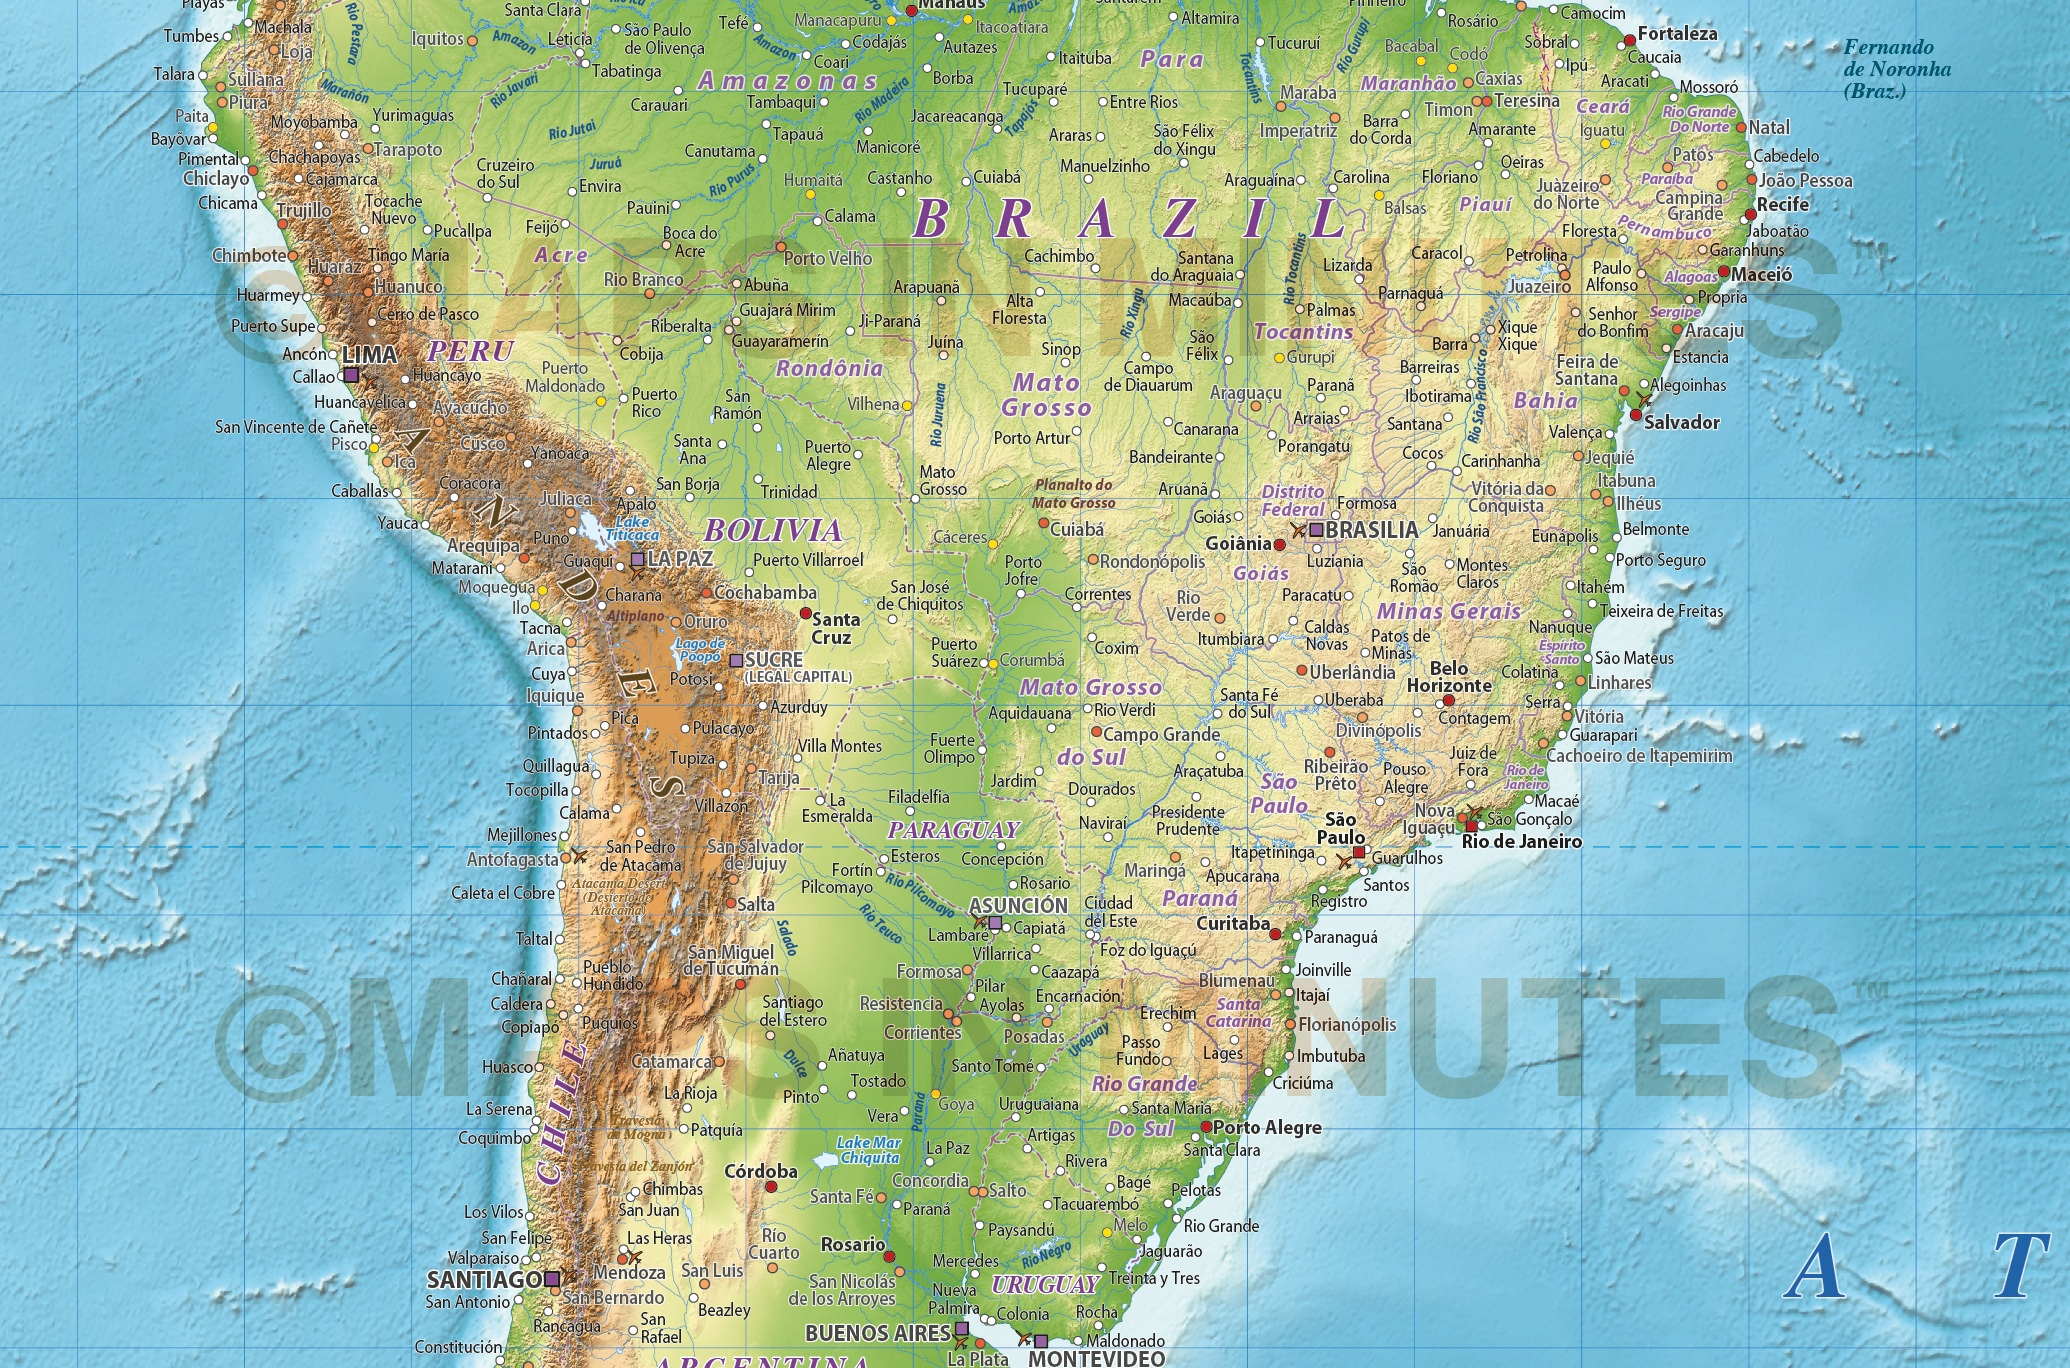 Digital Vector Political World Map With Relief Terrain For Land - South america relief map peru